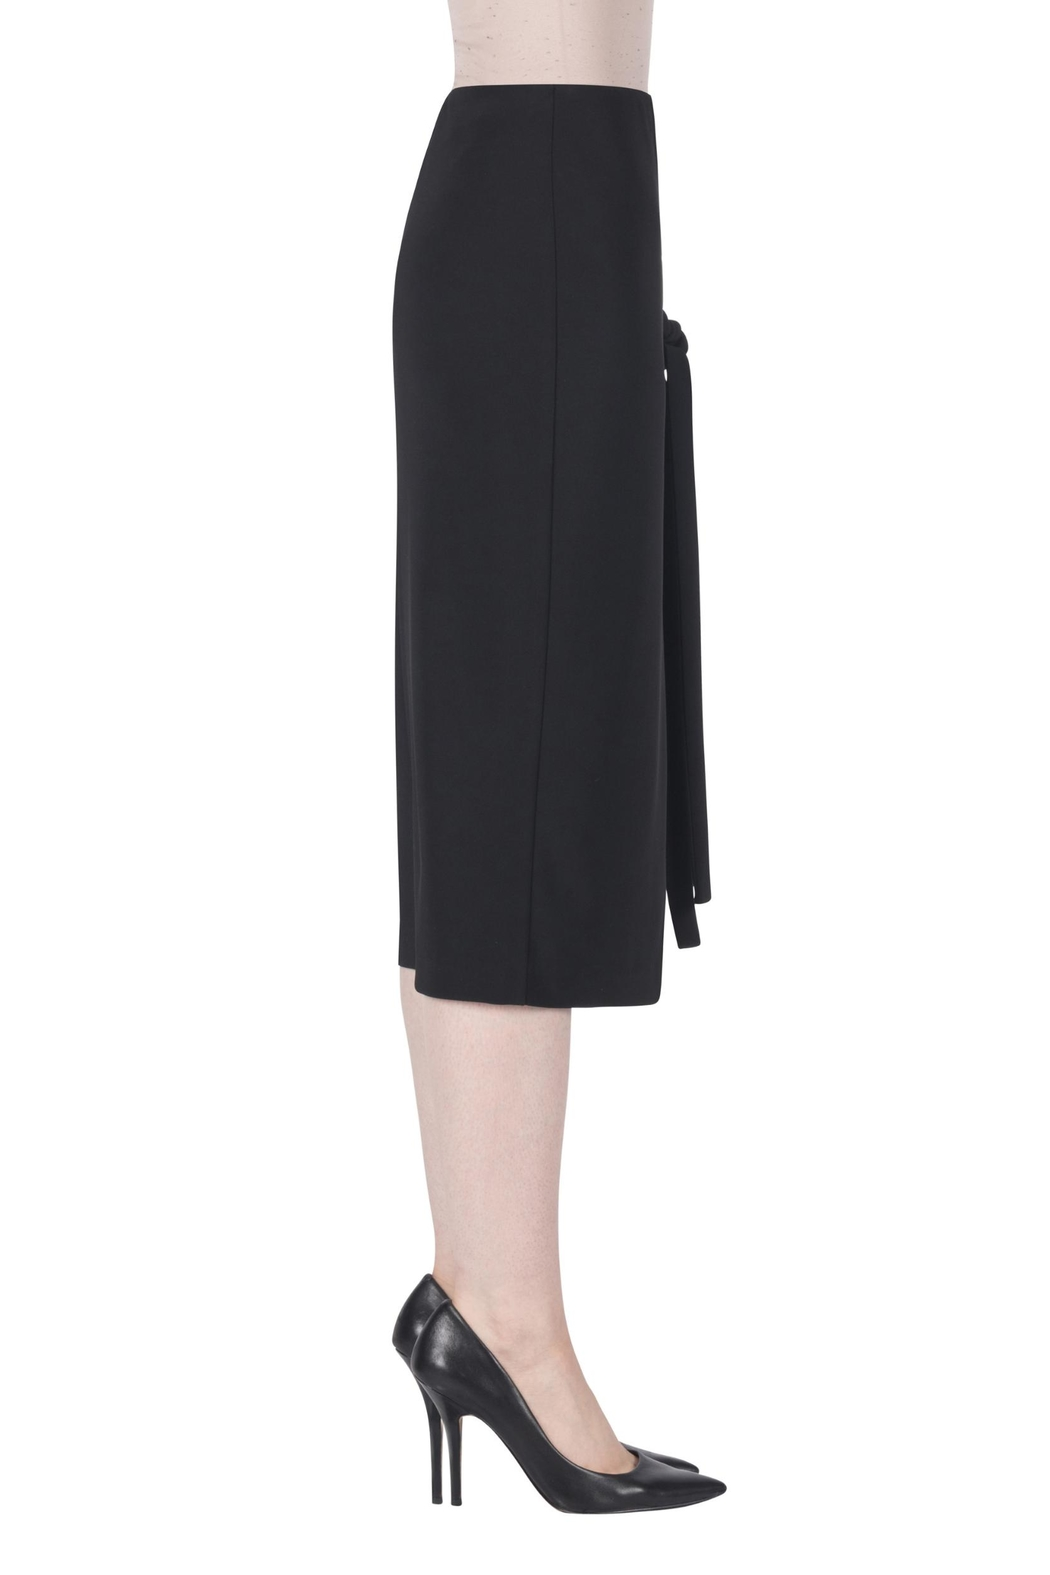 Joseph Ribkoff Timeless Pencil Skirt - Side Cropped Image